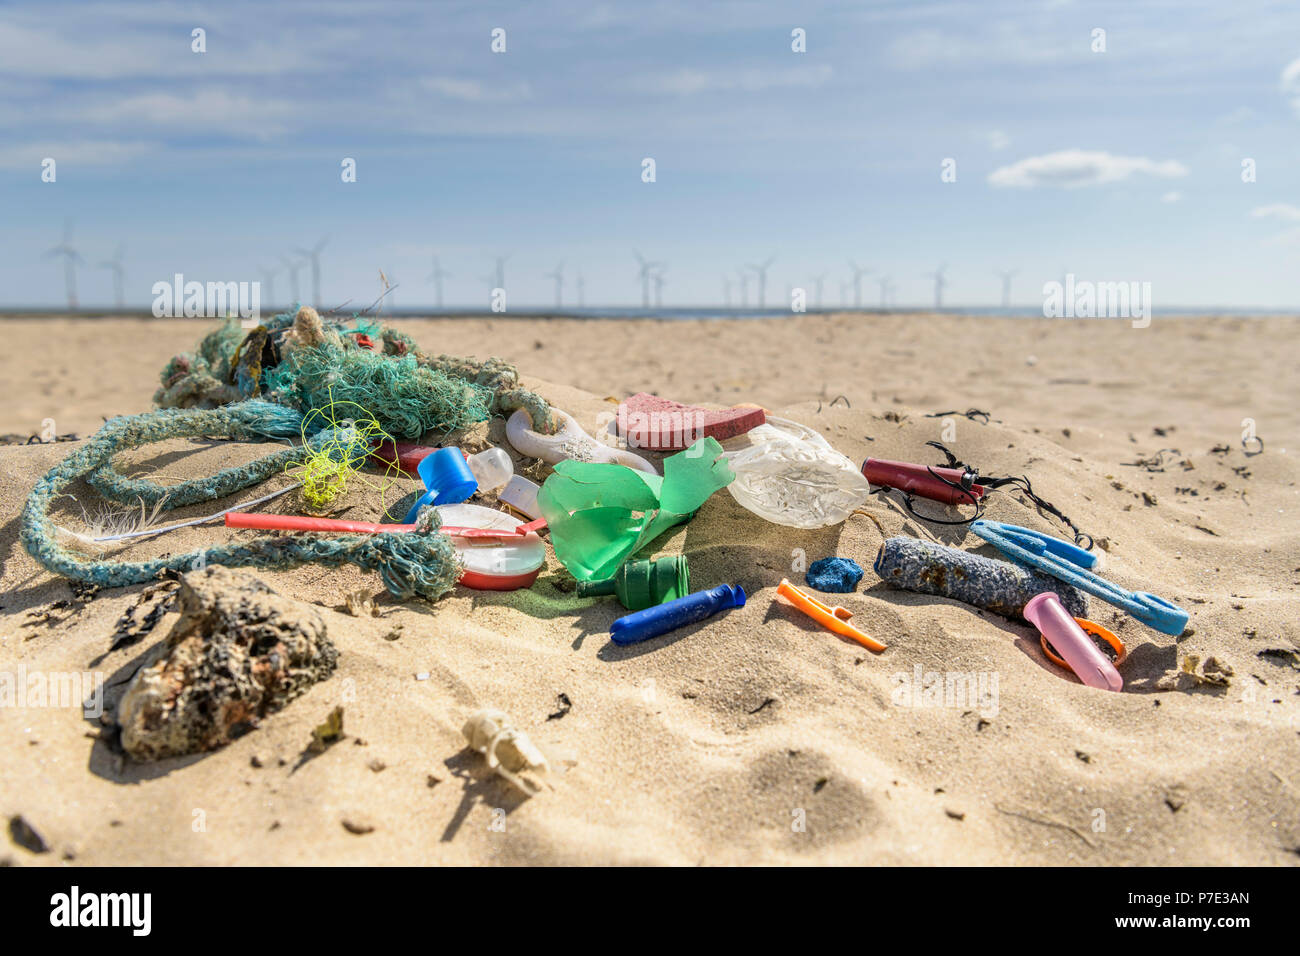 Plastic pollution collected on beach, North East England, UK - Stock Image